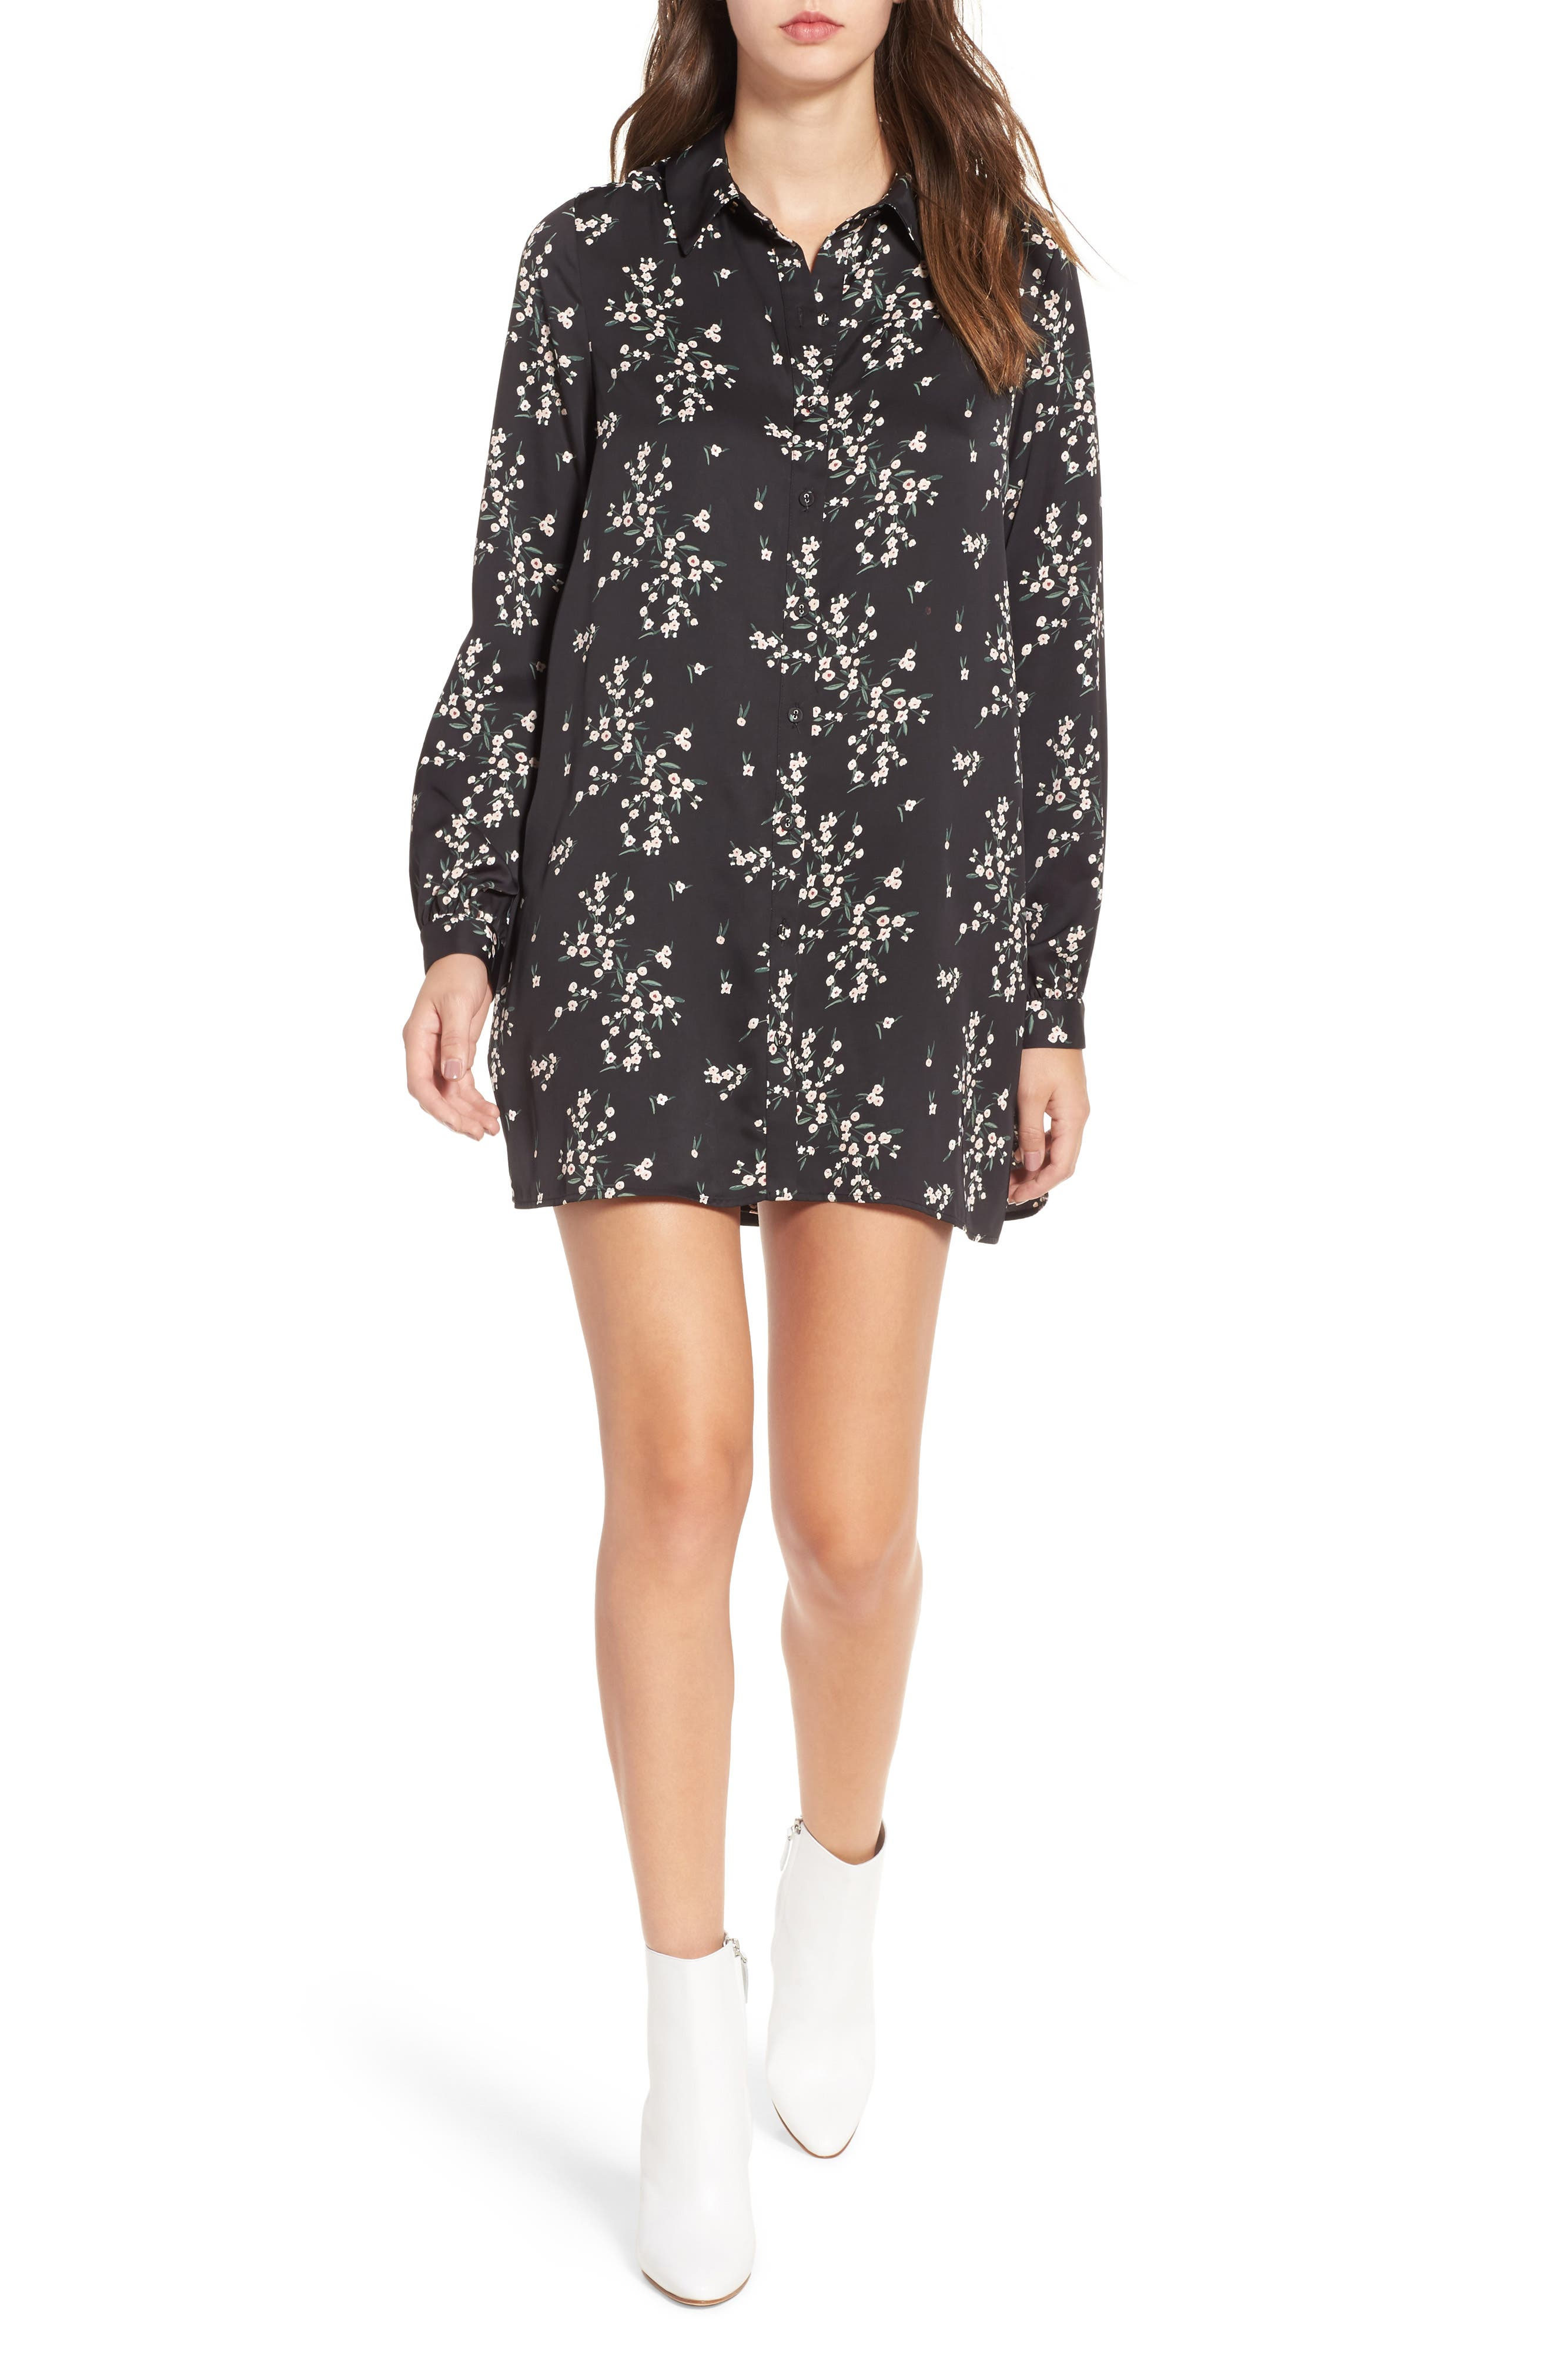 L'Academie The Swing Shirtdress,                         Main,                         color, Ditsy Blossom